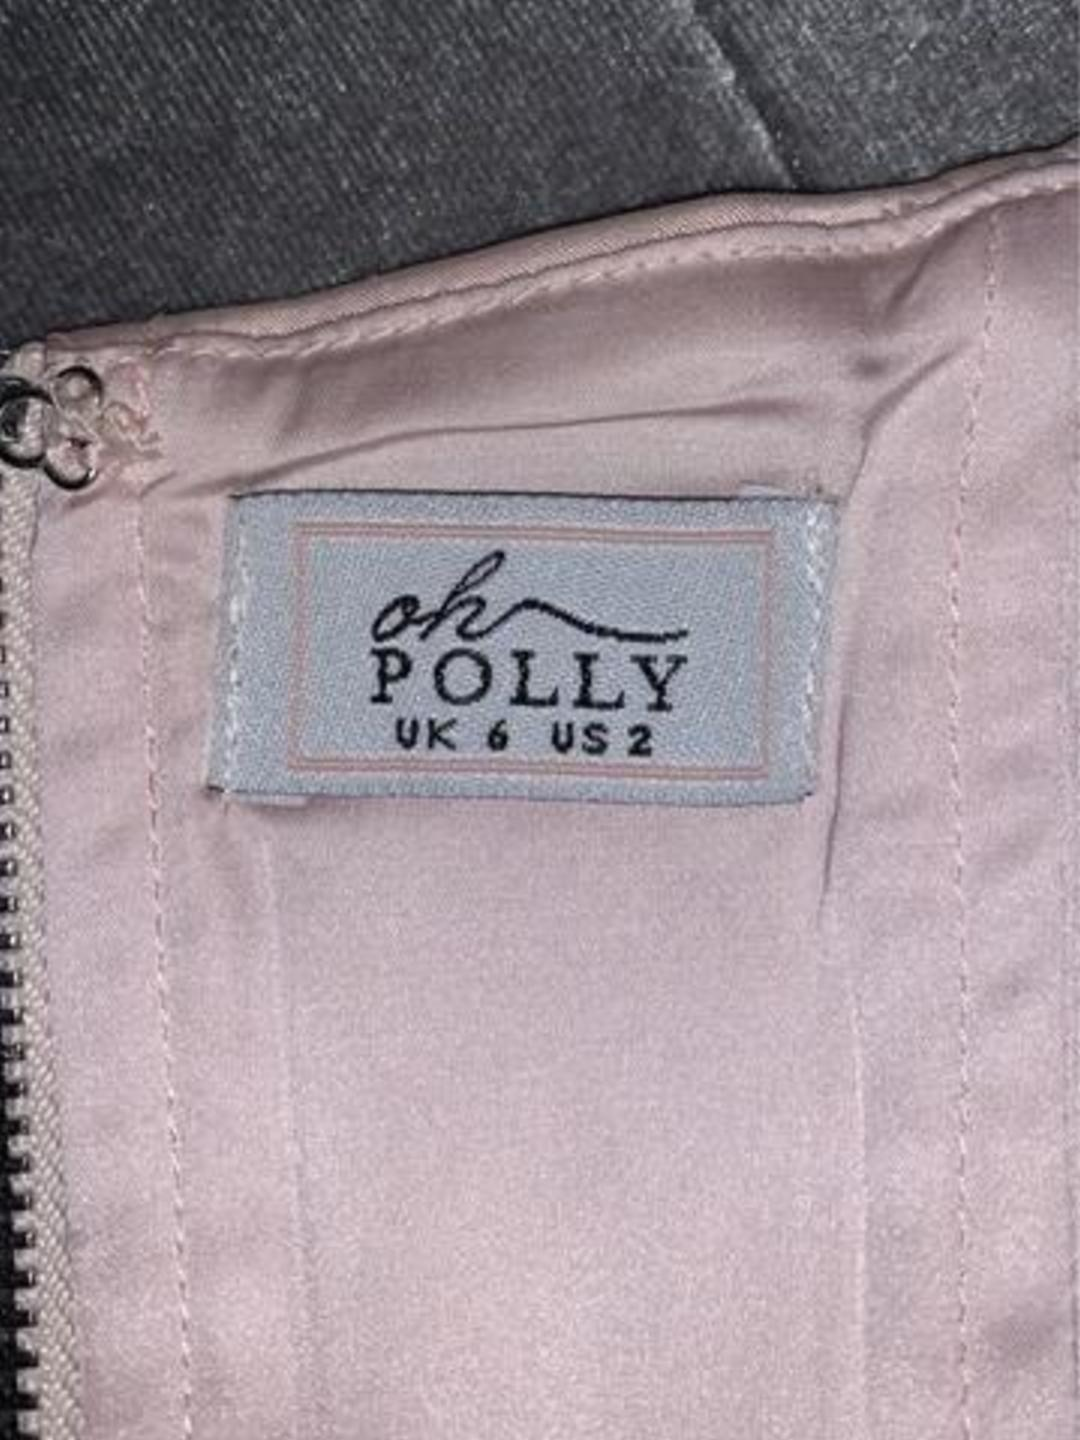 Women's tops & t-shirts - OH POLLY photo 4